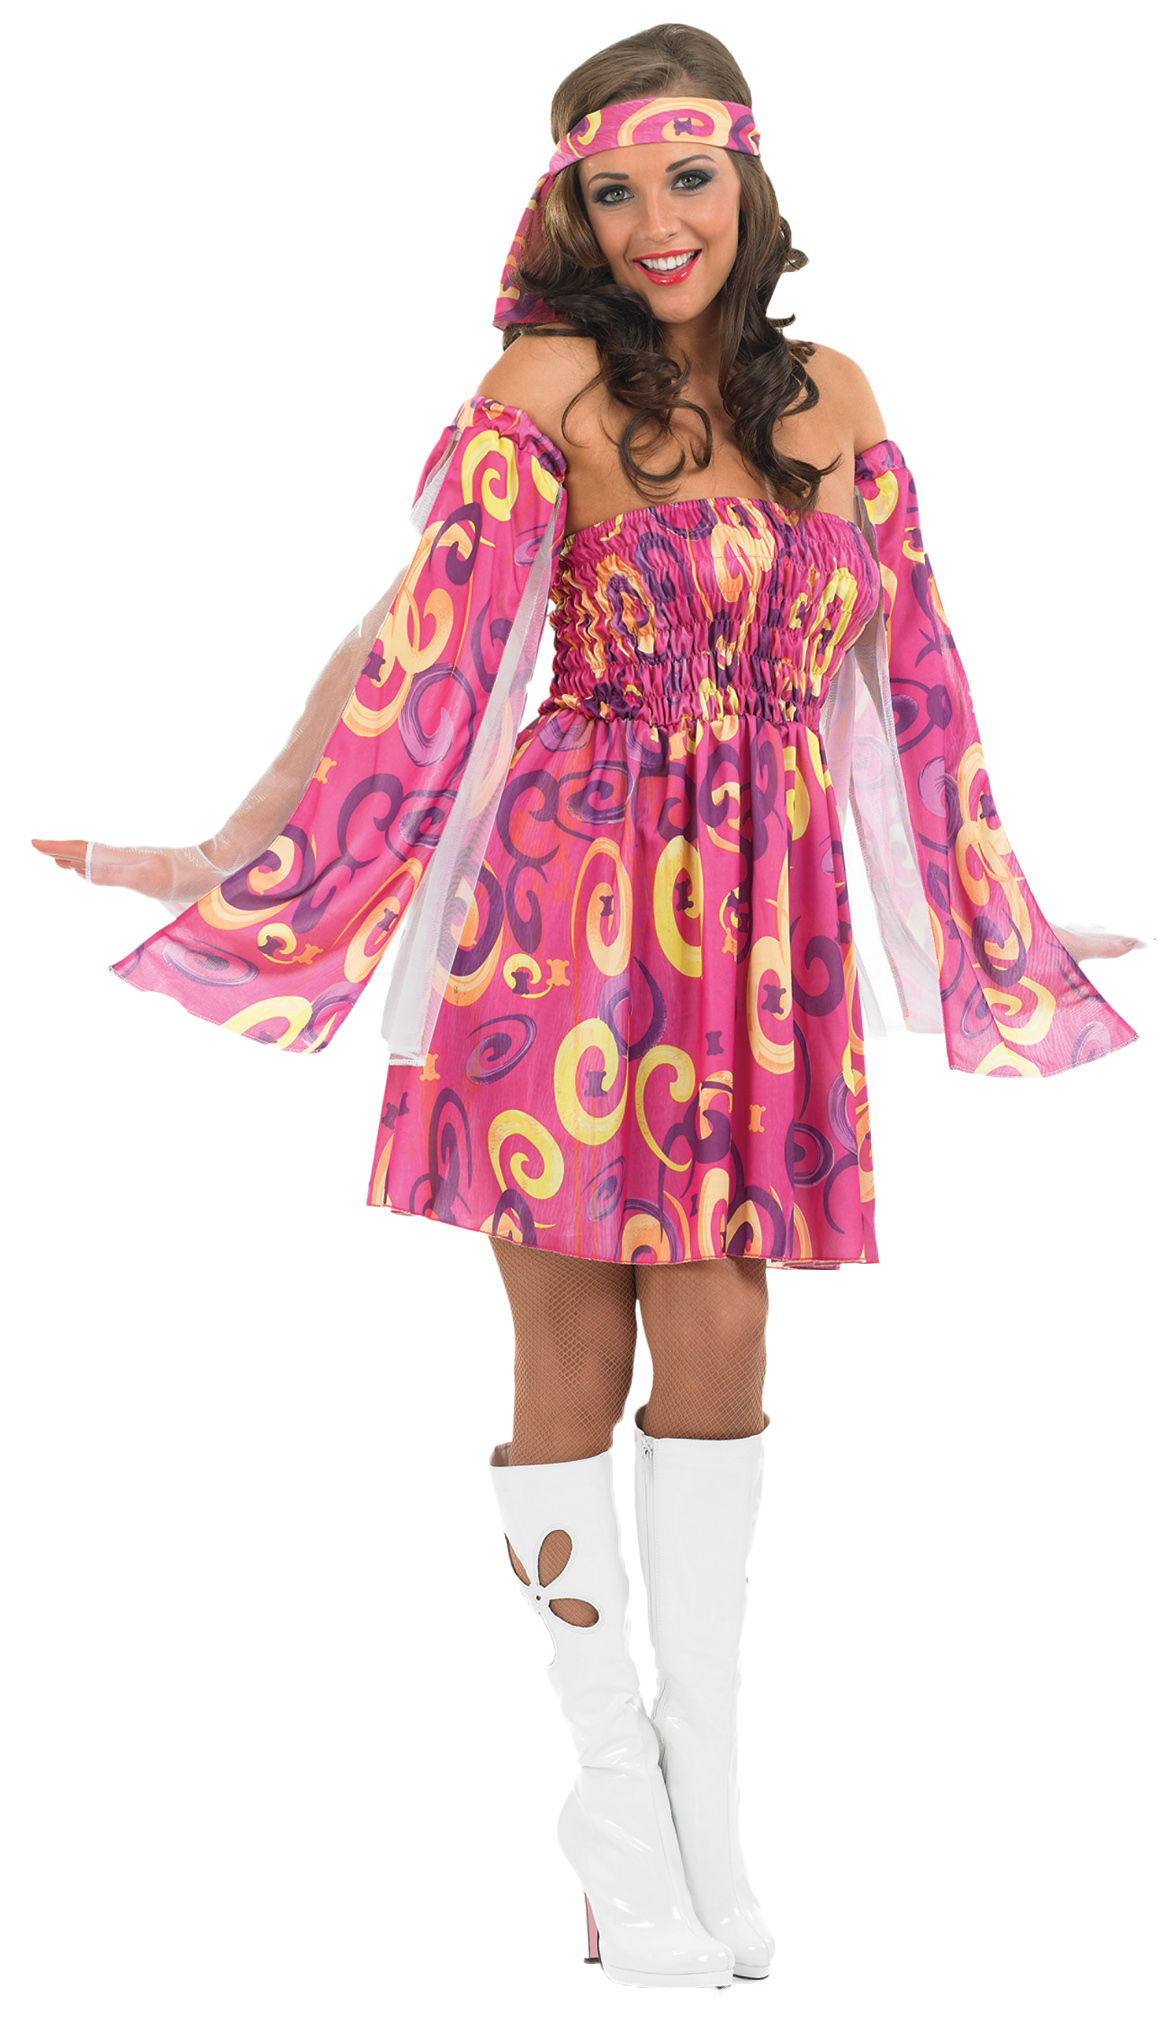 60s swirl dress costume all ladies costumes mega fancy free st patrick's day clip art images free st patrick's day clip art to print